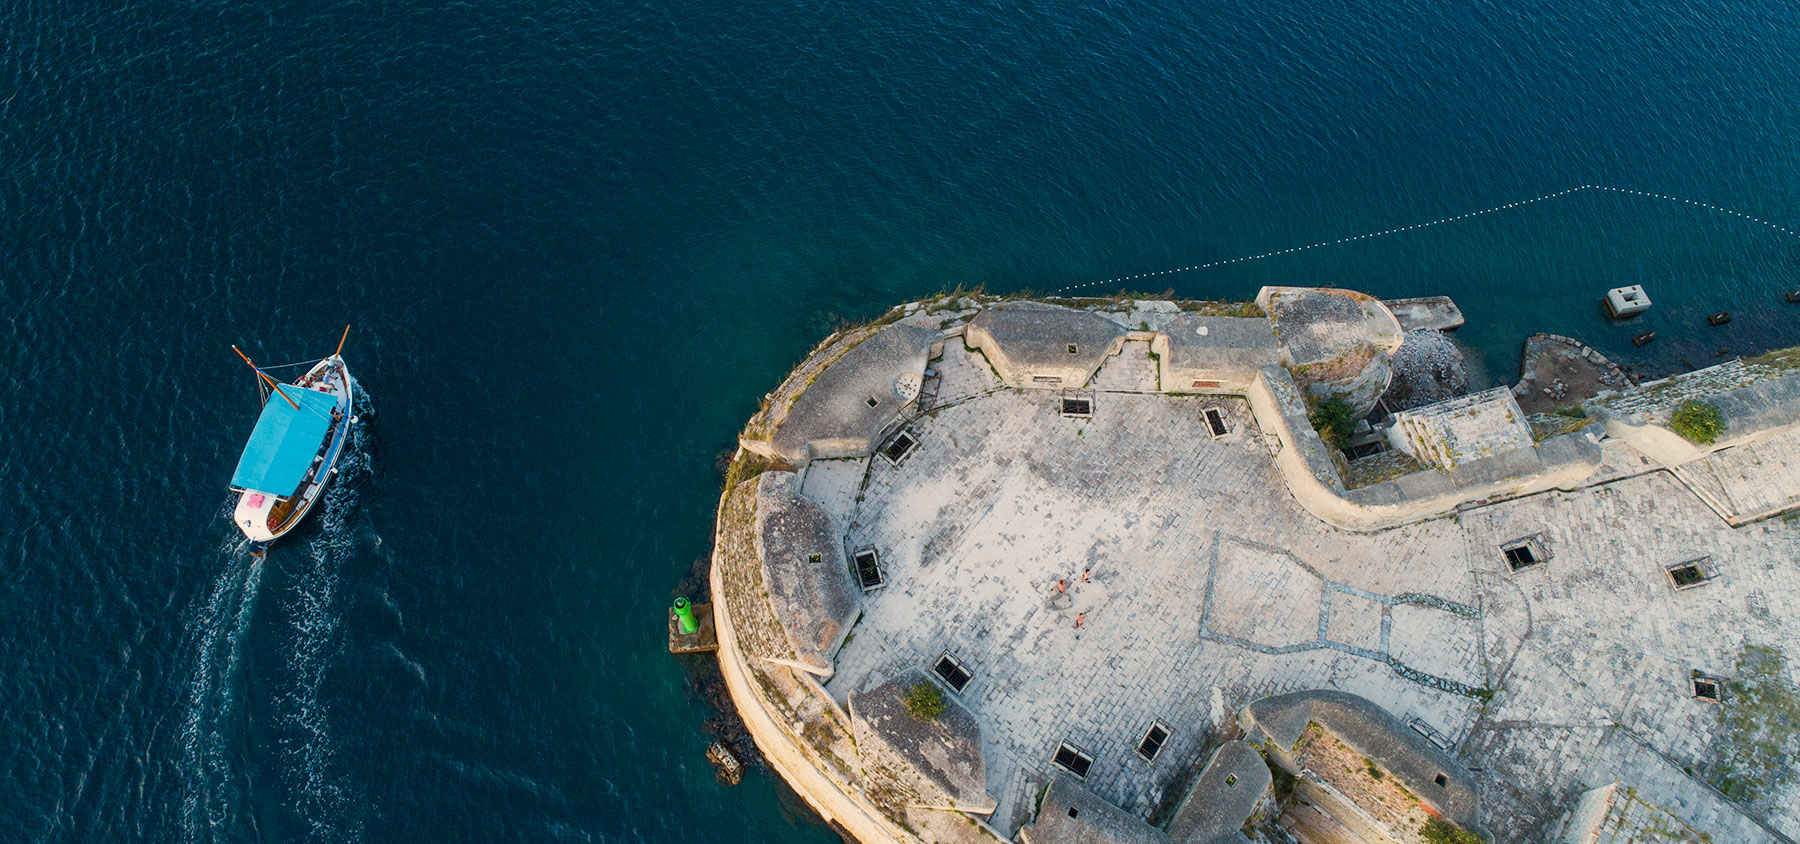 Aerial photo of the big boat taken next to the fortress of Saint Nicholas'